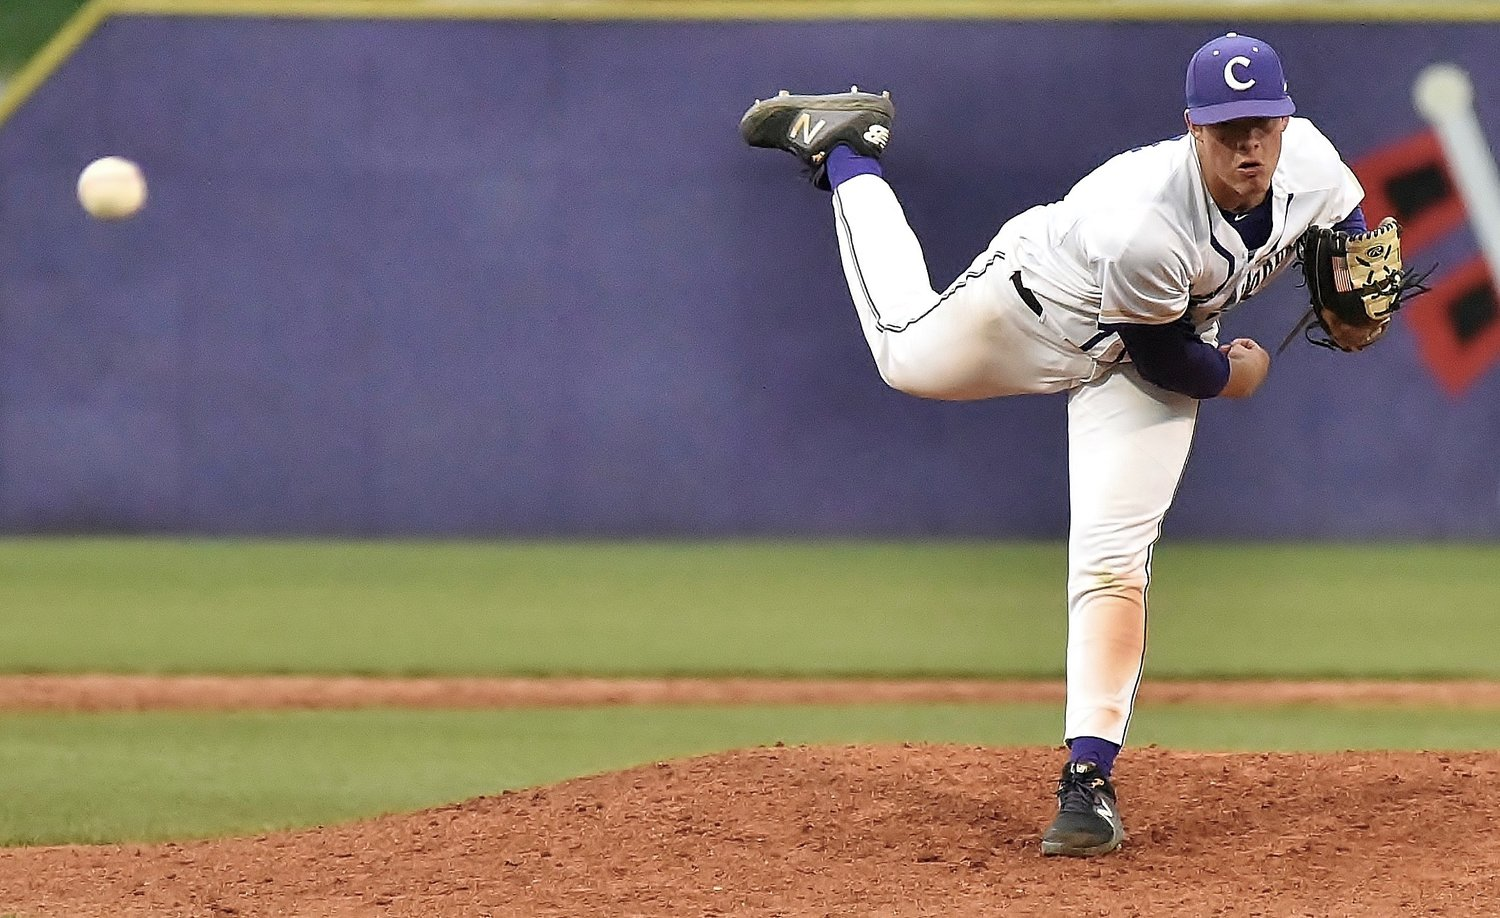 Cartersville senior Mason Barnett was named the Region 5-AAAA pitcher of the year.